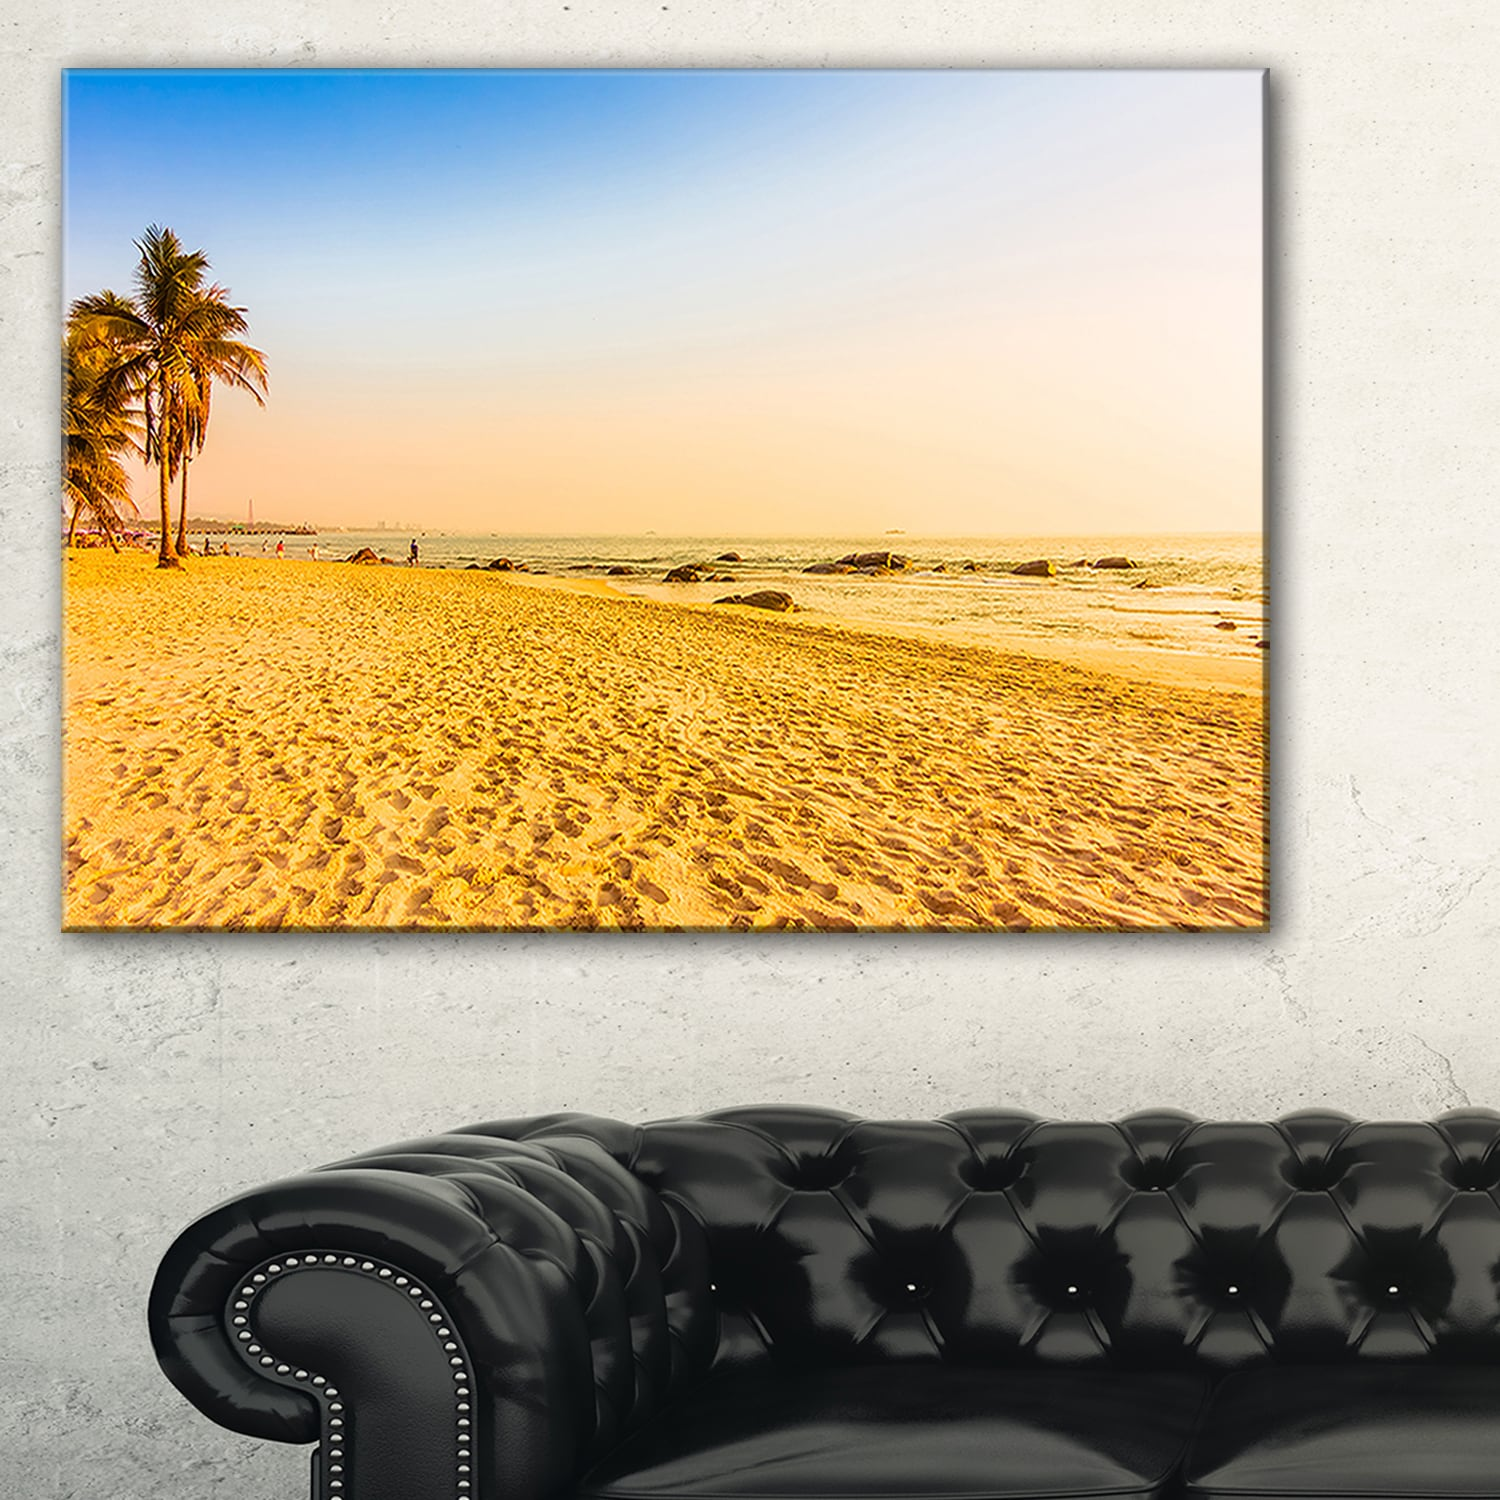 Shop Coconut Palm Trees on Beach - Landscape Photo Glossy Metal Wall ...